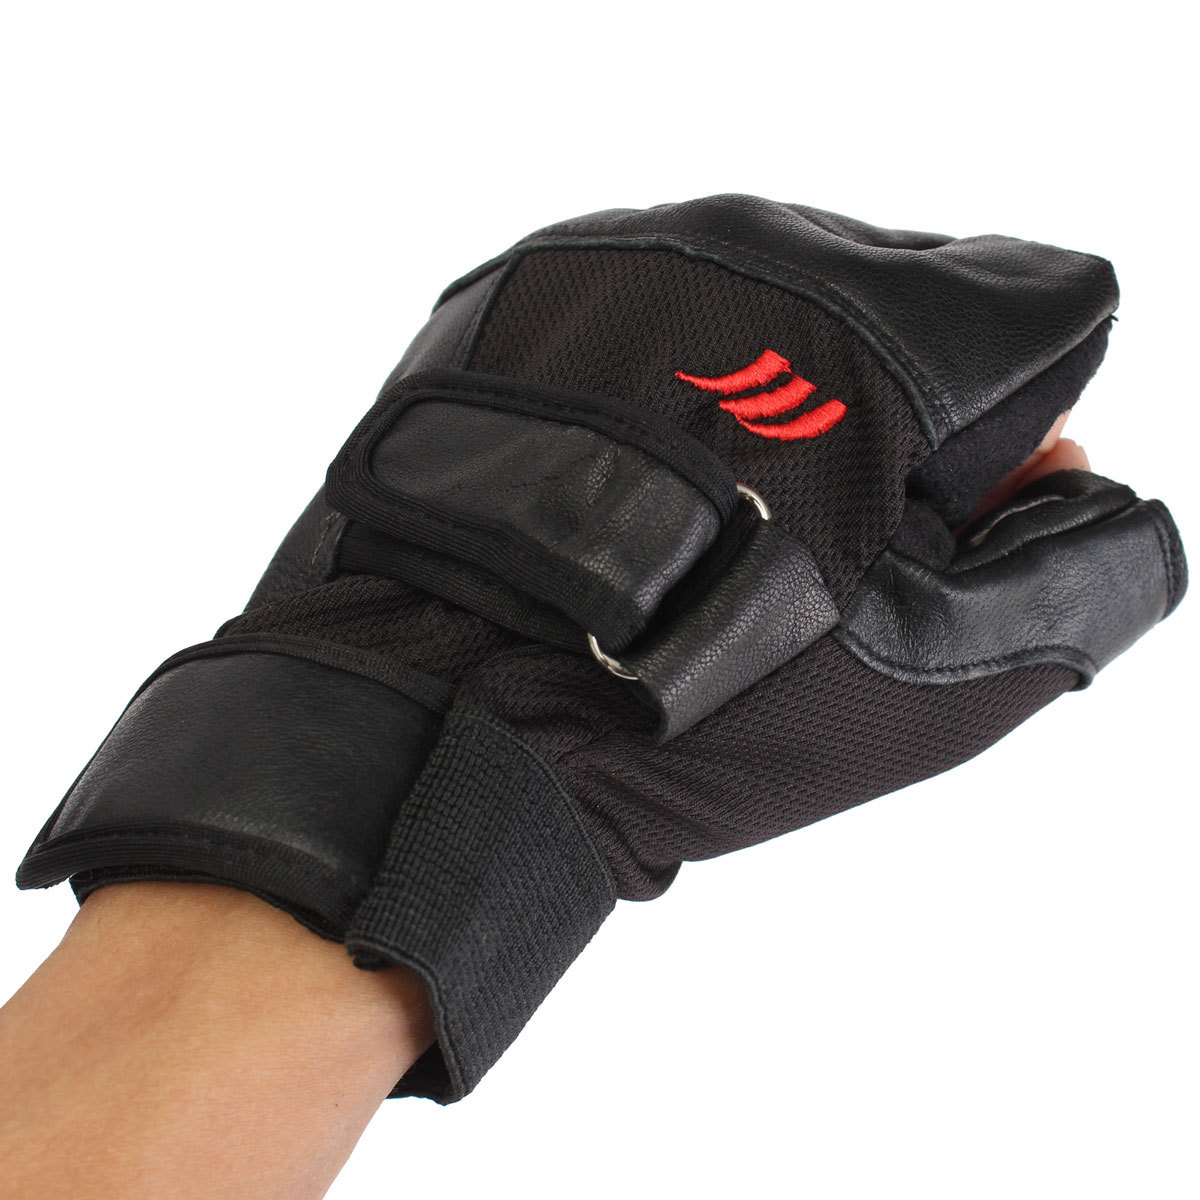 Fitness Gloves New Zealand: Tactical Men's Leather Weight Lifting Gloves Training Gym